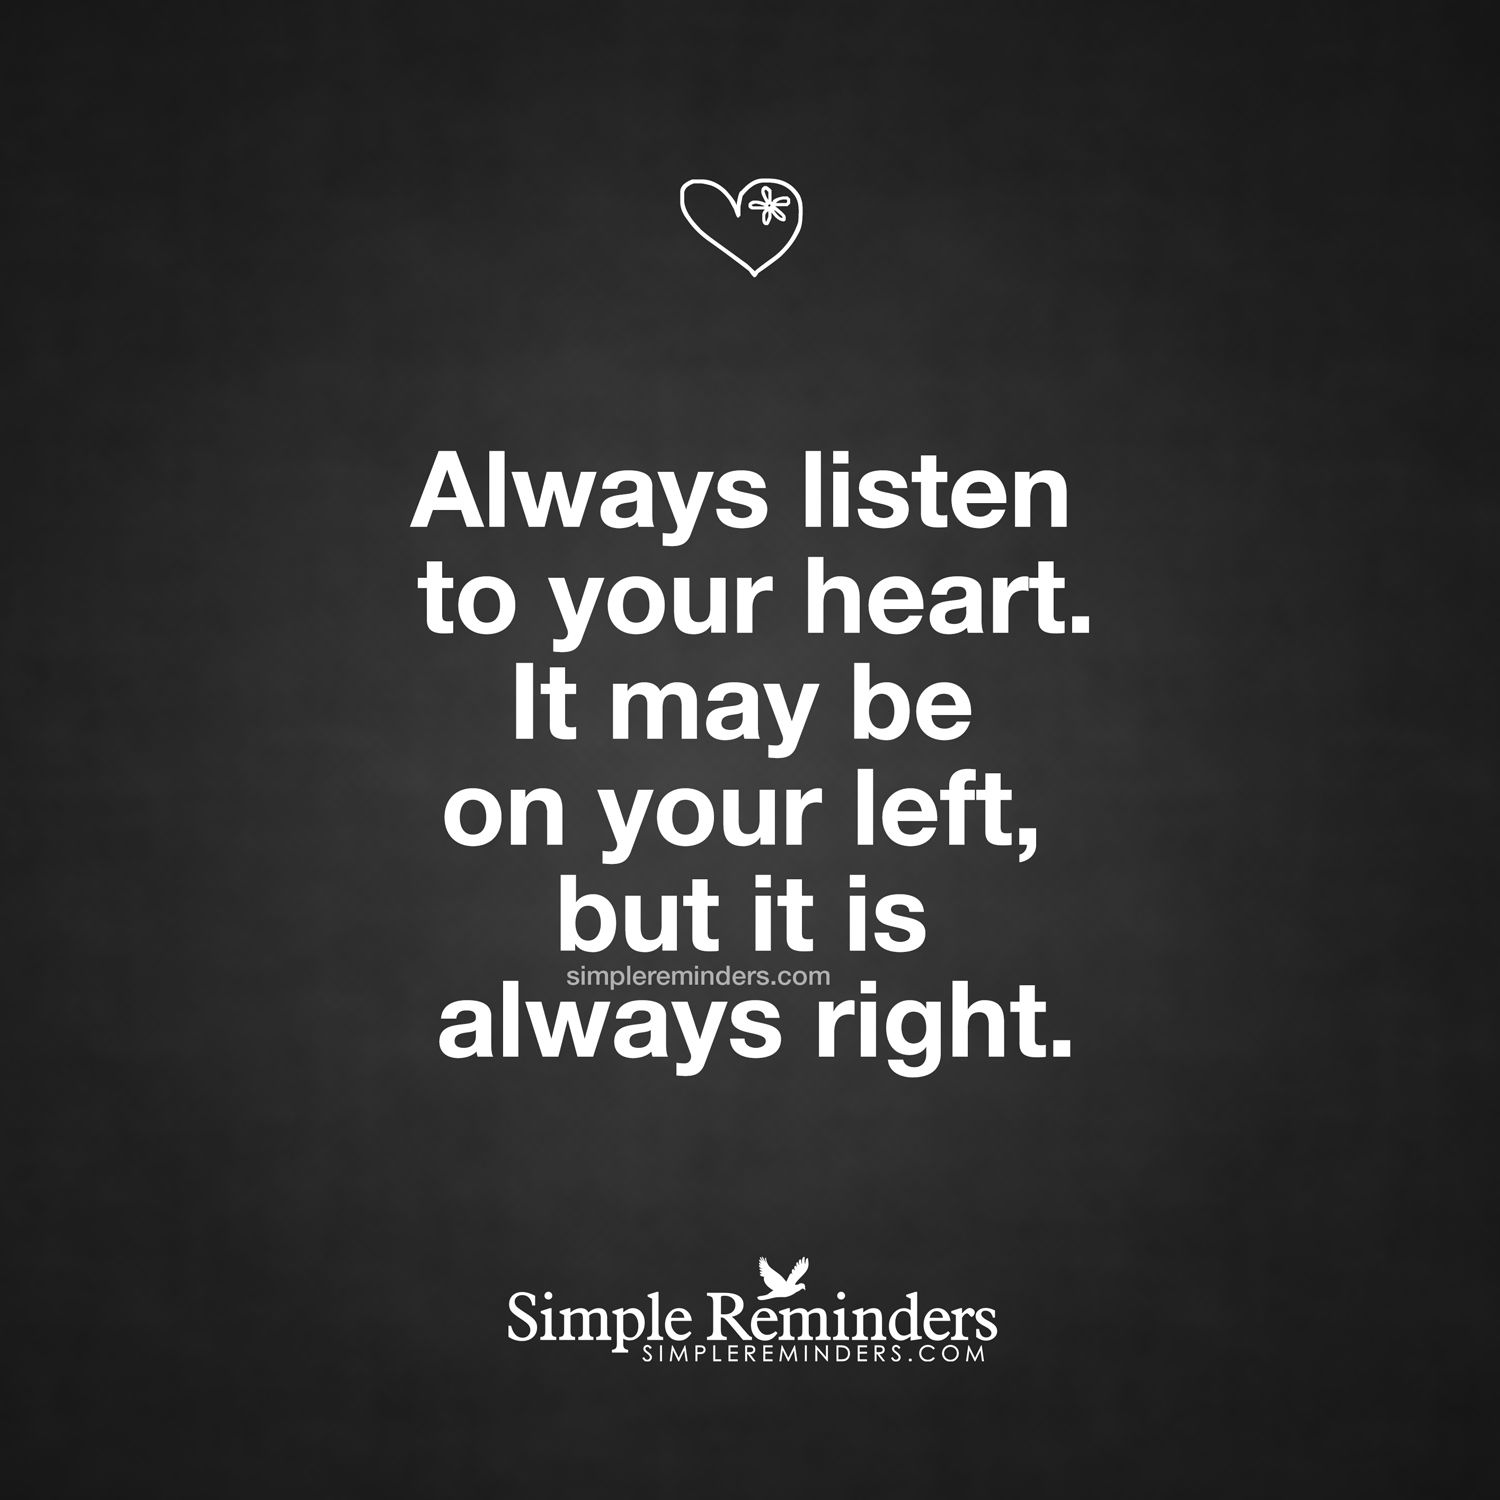 Best Motivational Quotes For Lefties: Your Heart Is Always Right Always Listen To Your Heart. It